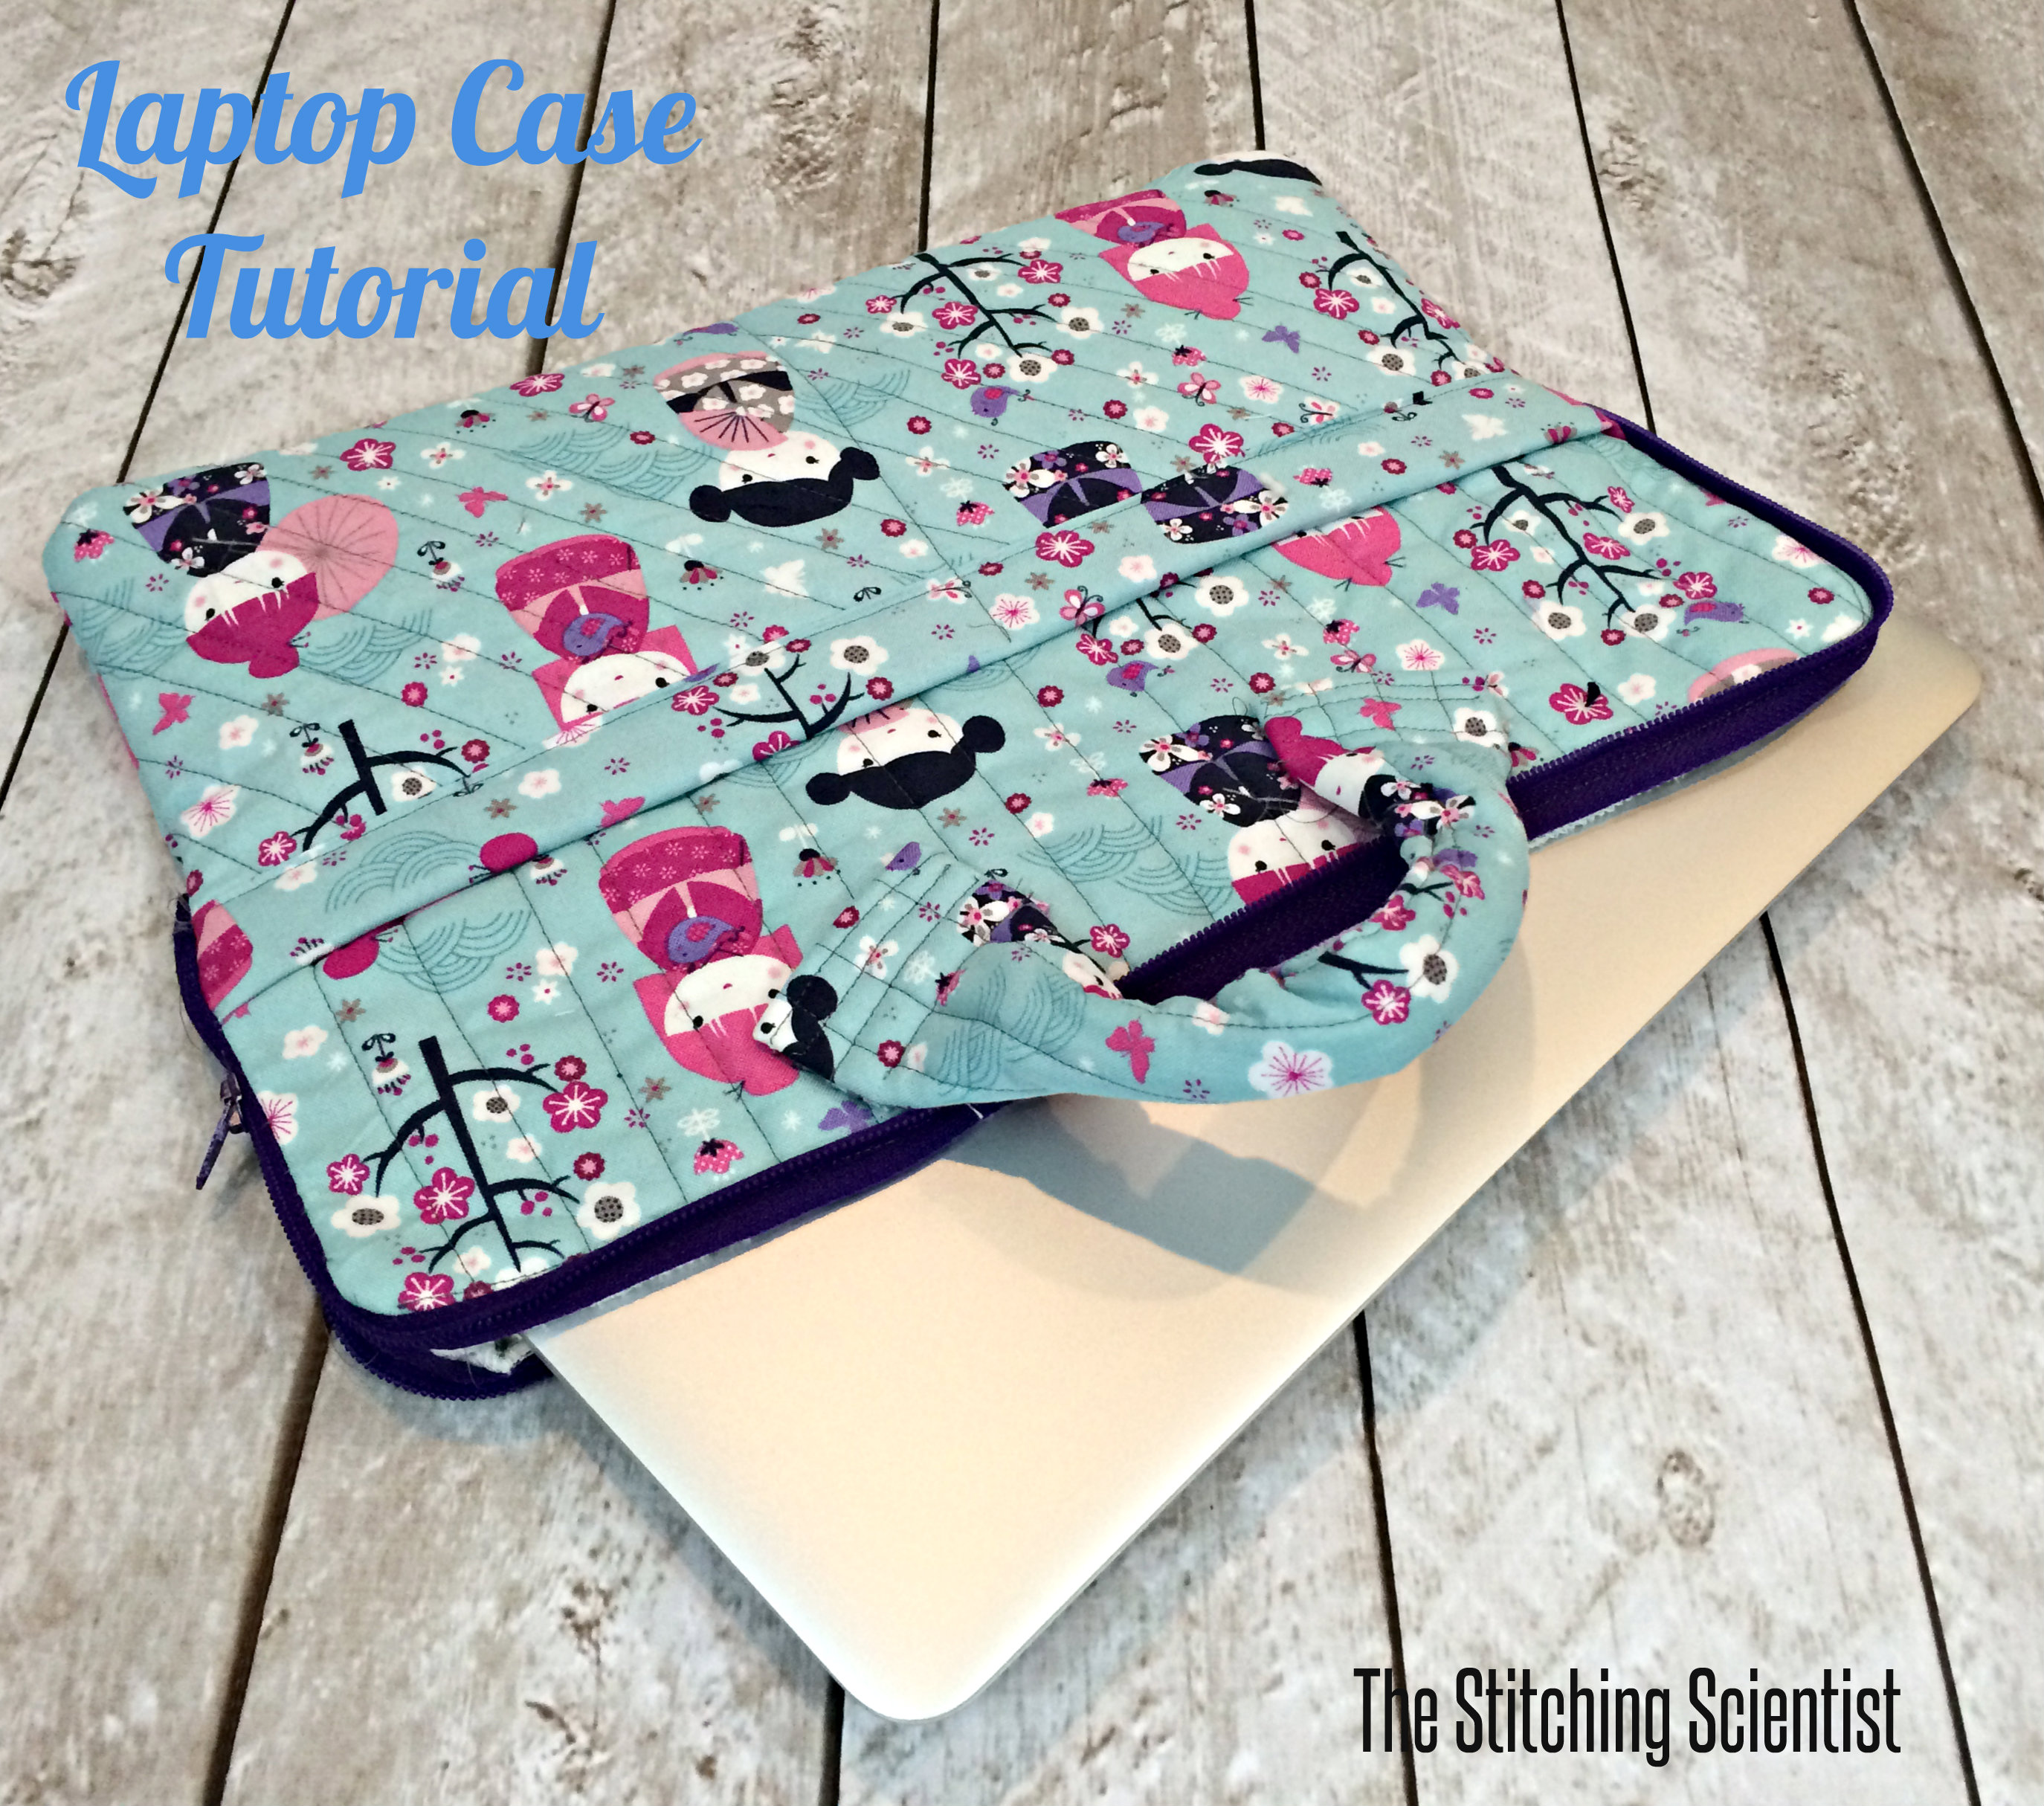 Sew a laptop case